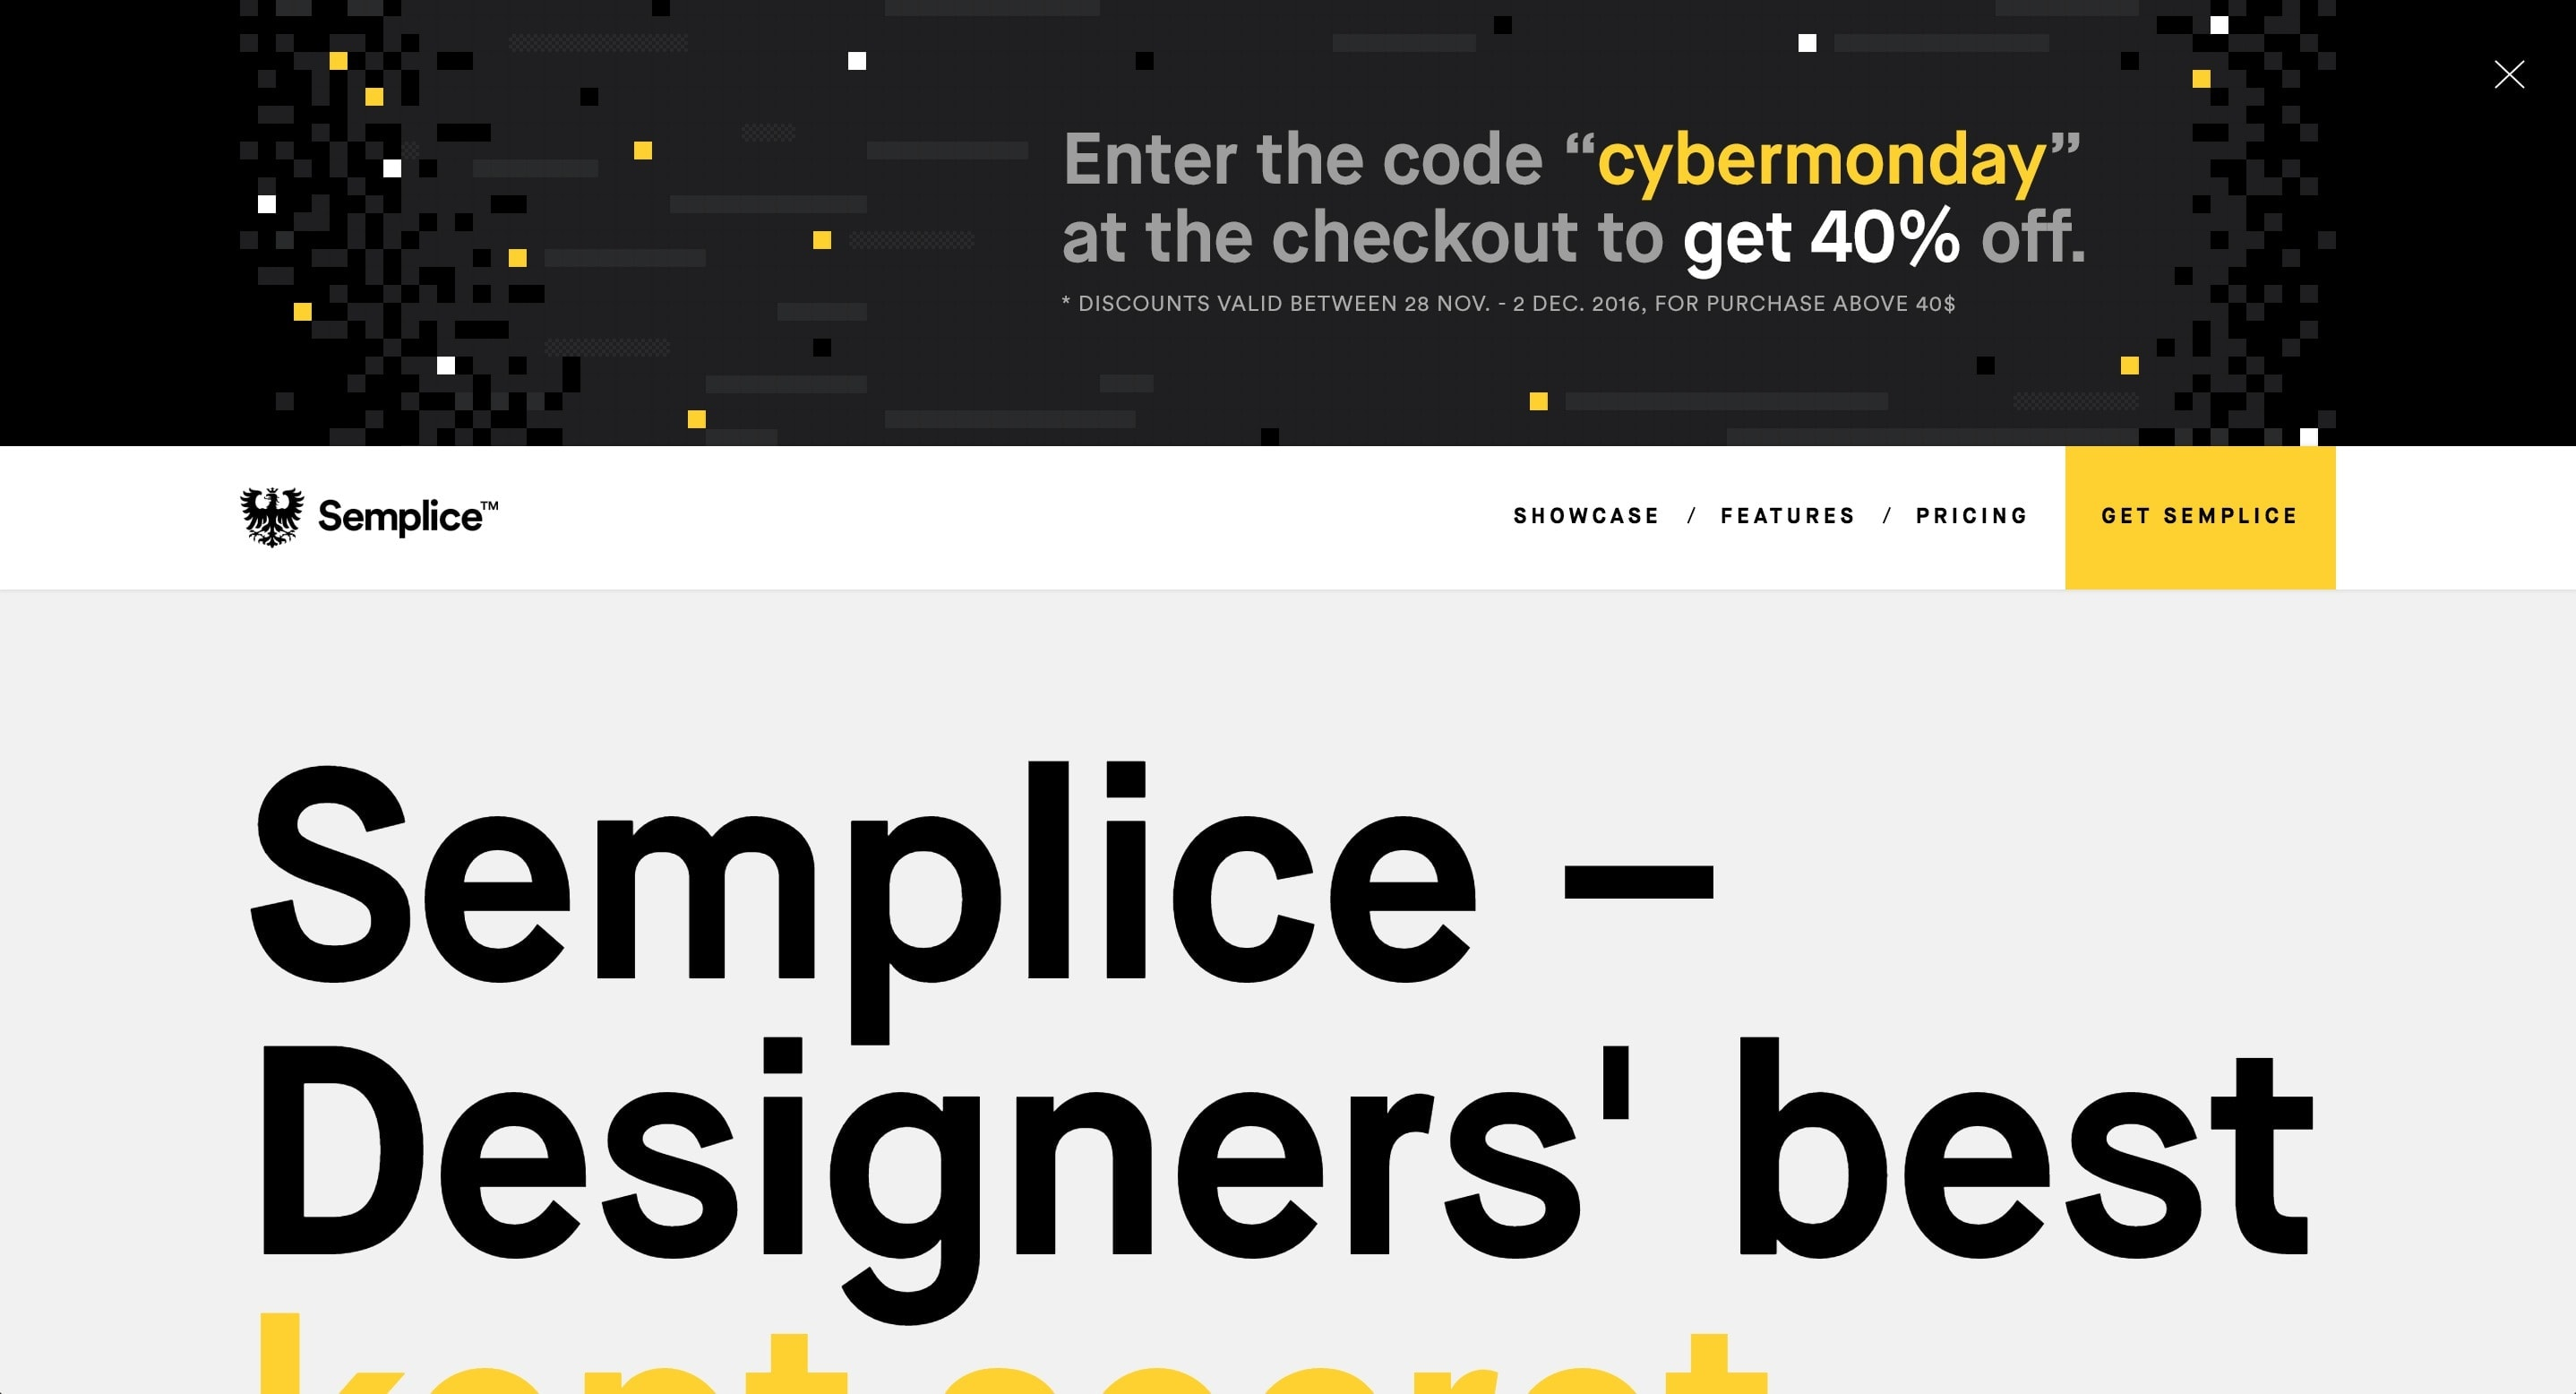 Advertising by Semplice